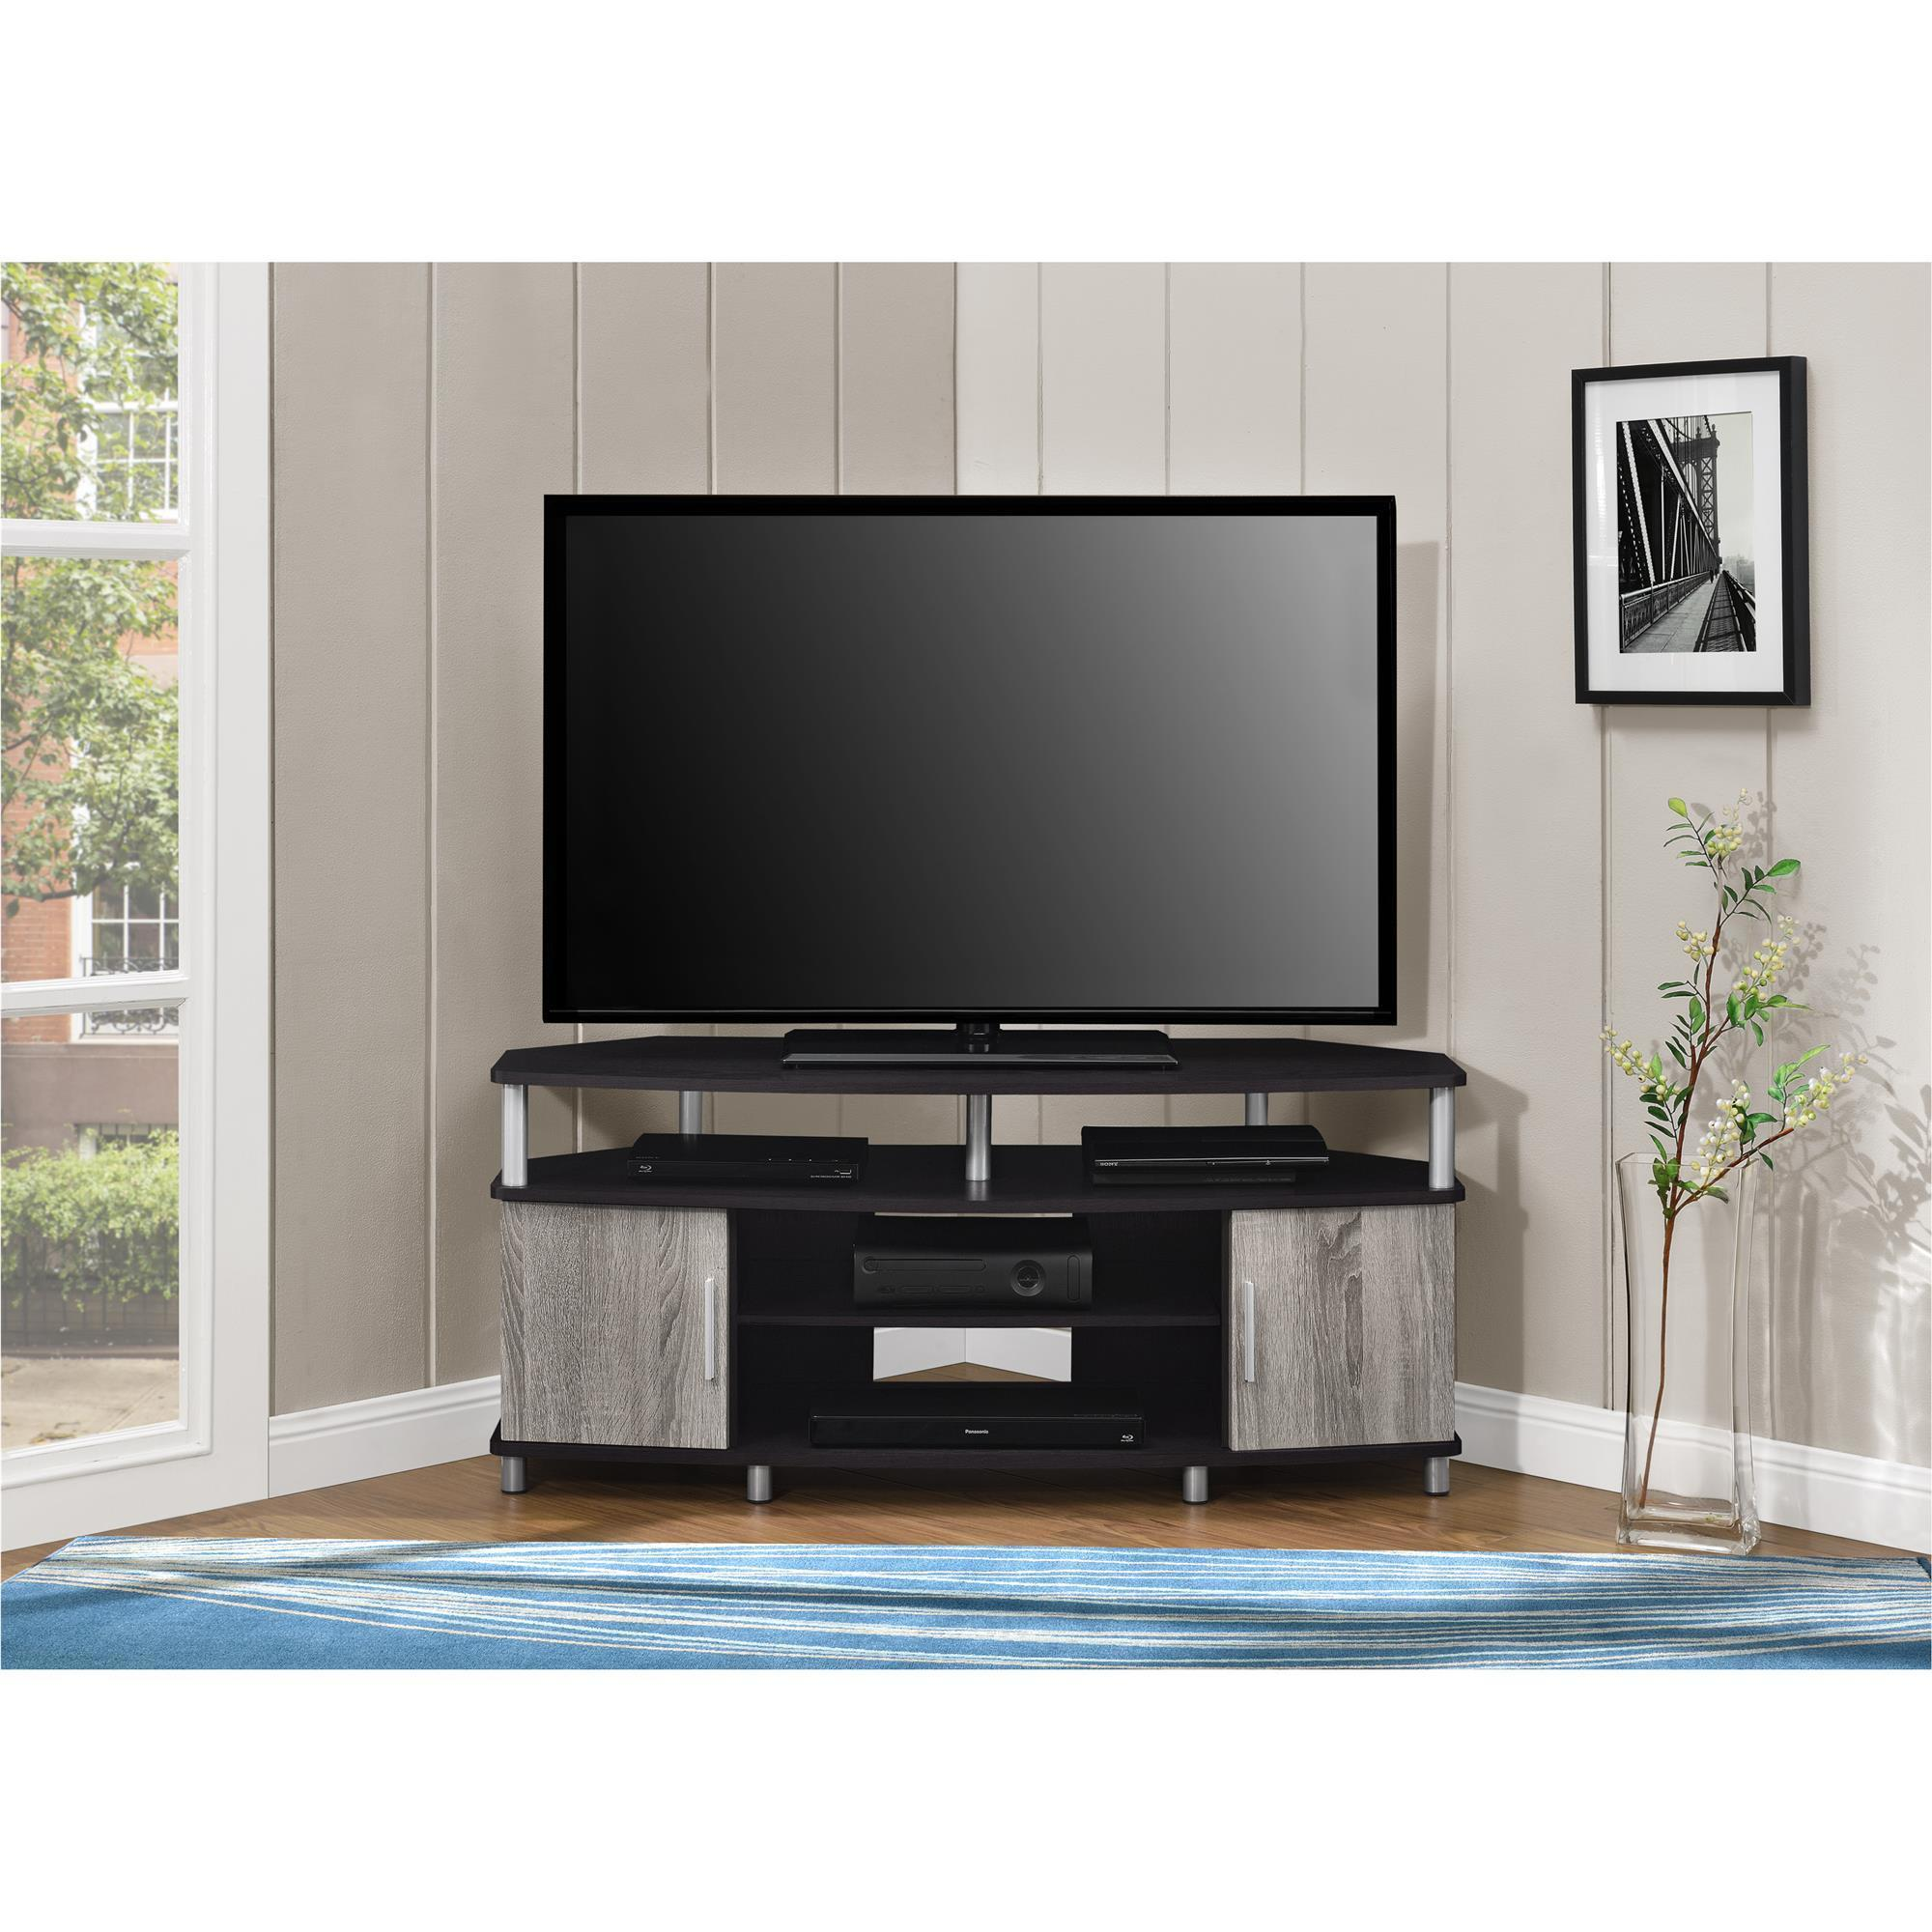 Bon Shop Ameriwood Home Carson Espresso/Weathered Oak Corner TV Stand For TVs  Up To 50 Inches   Free Shipping Today   Overstock.com   12653633